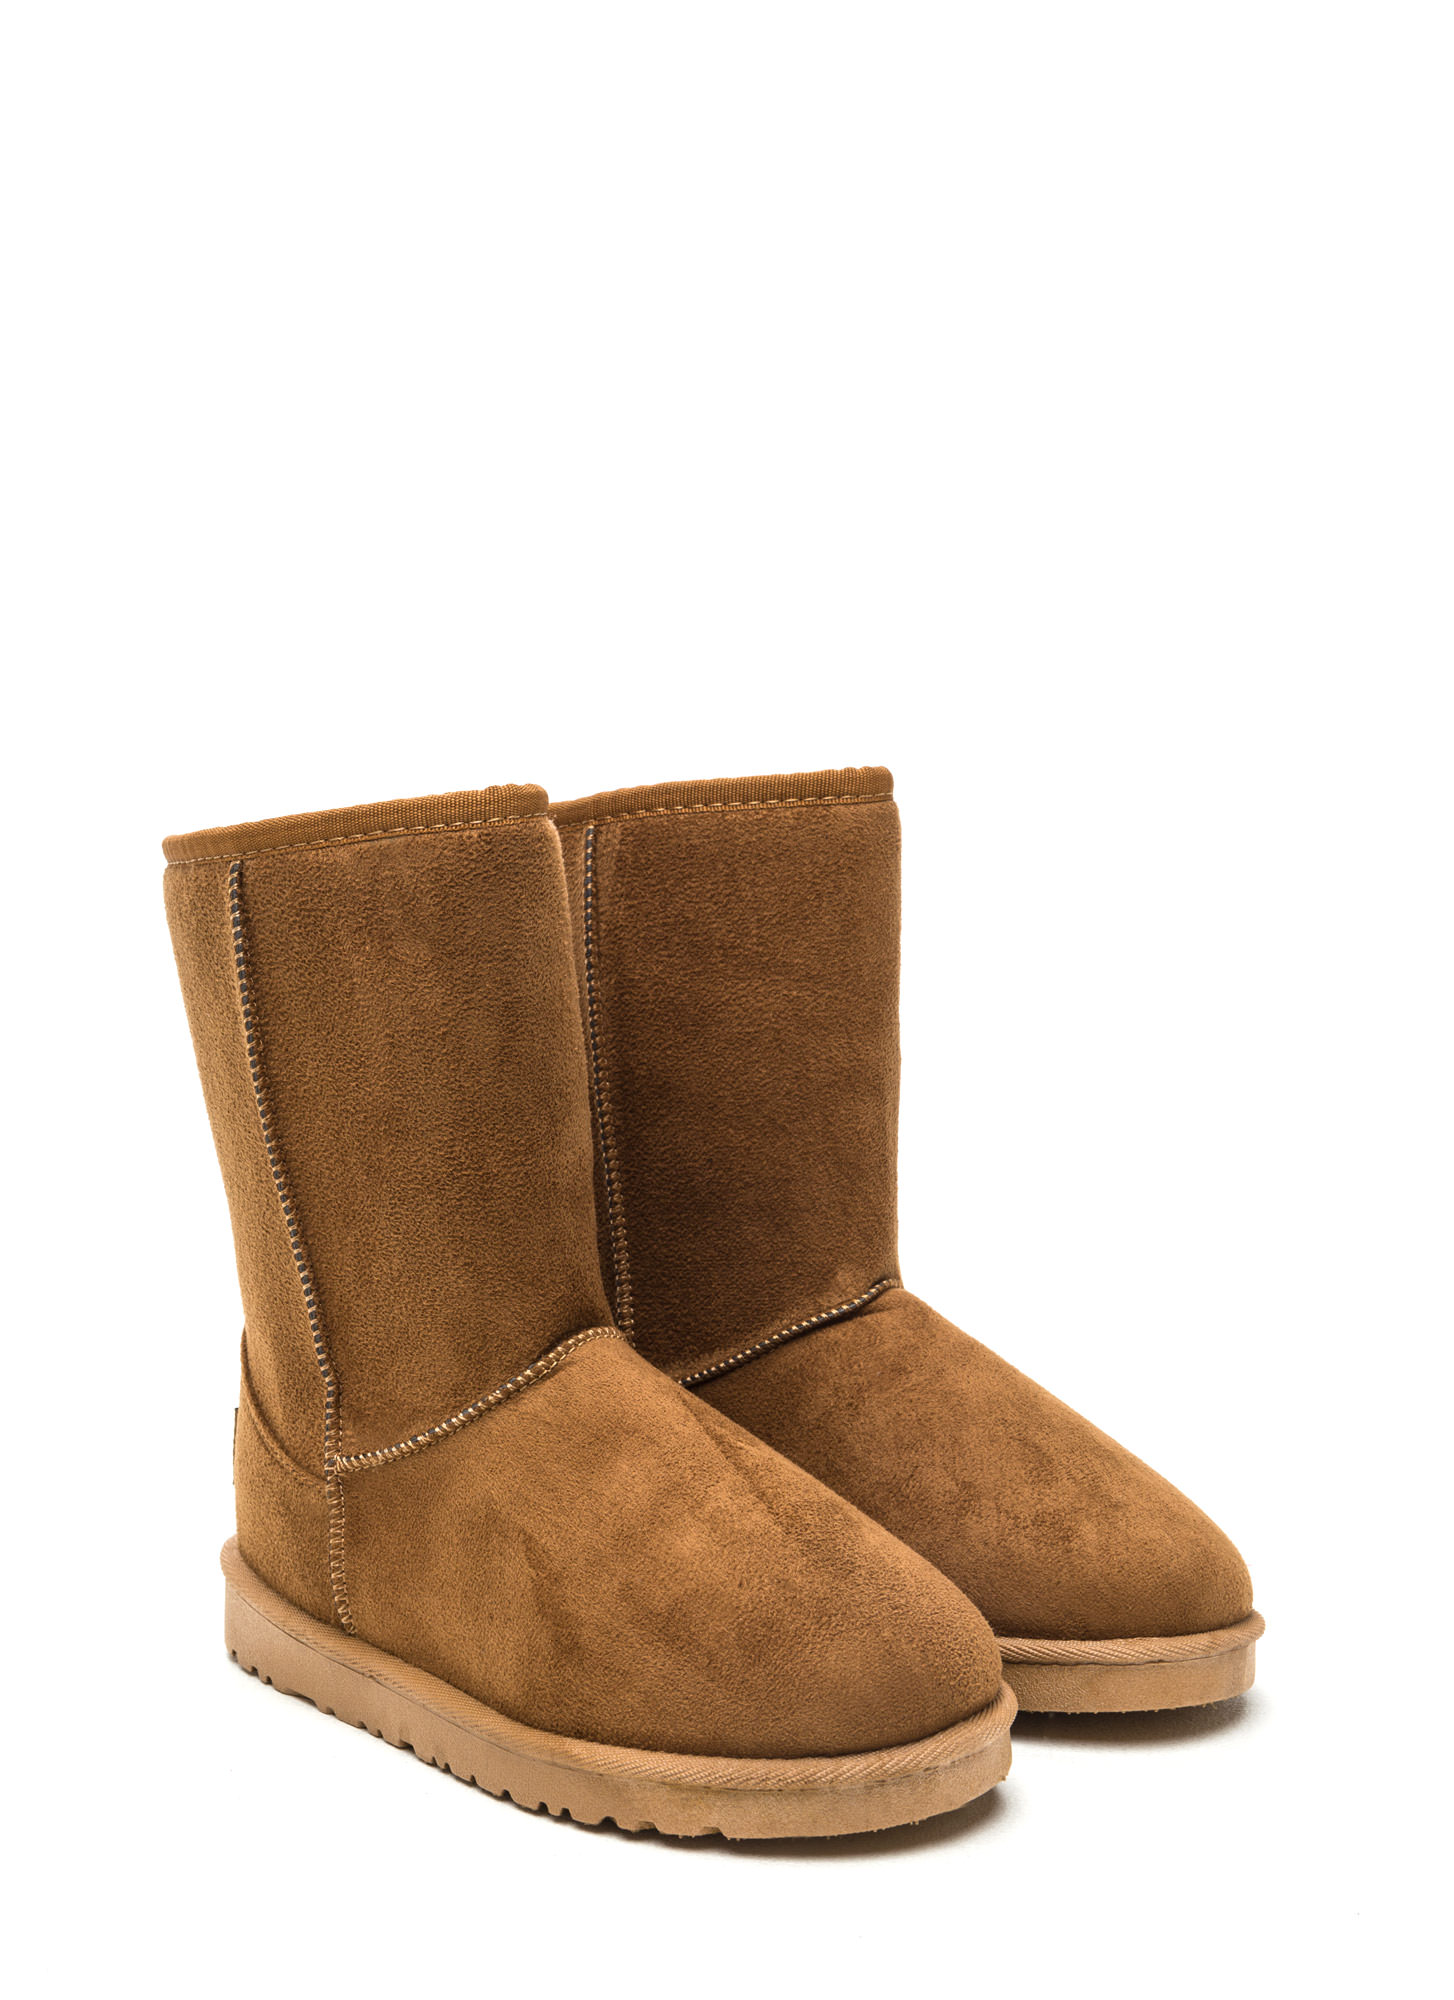 Basic Properties Faux Shearling Boots CAMEL